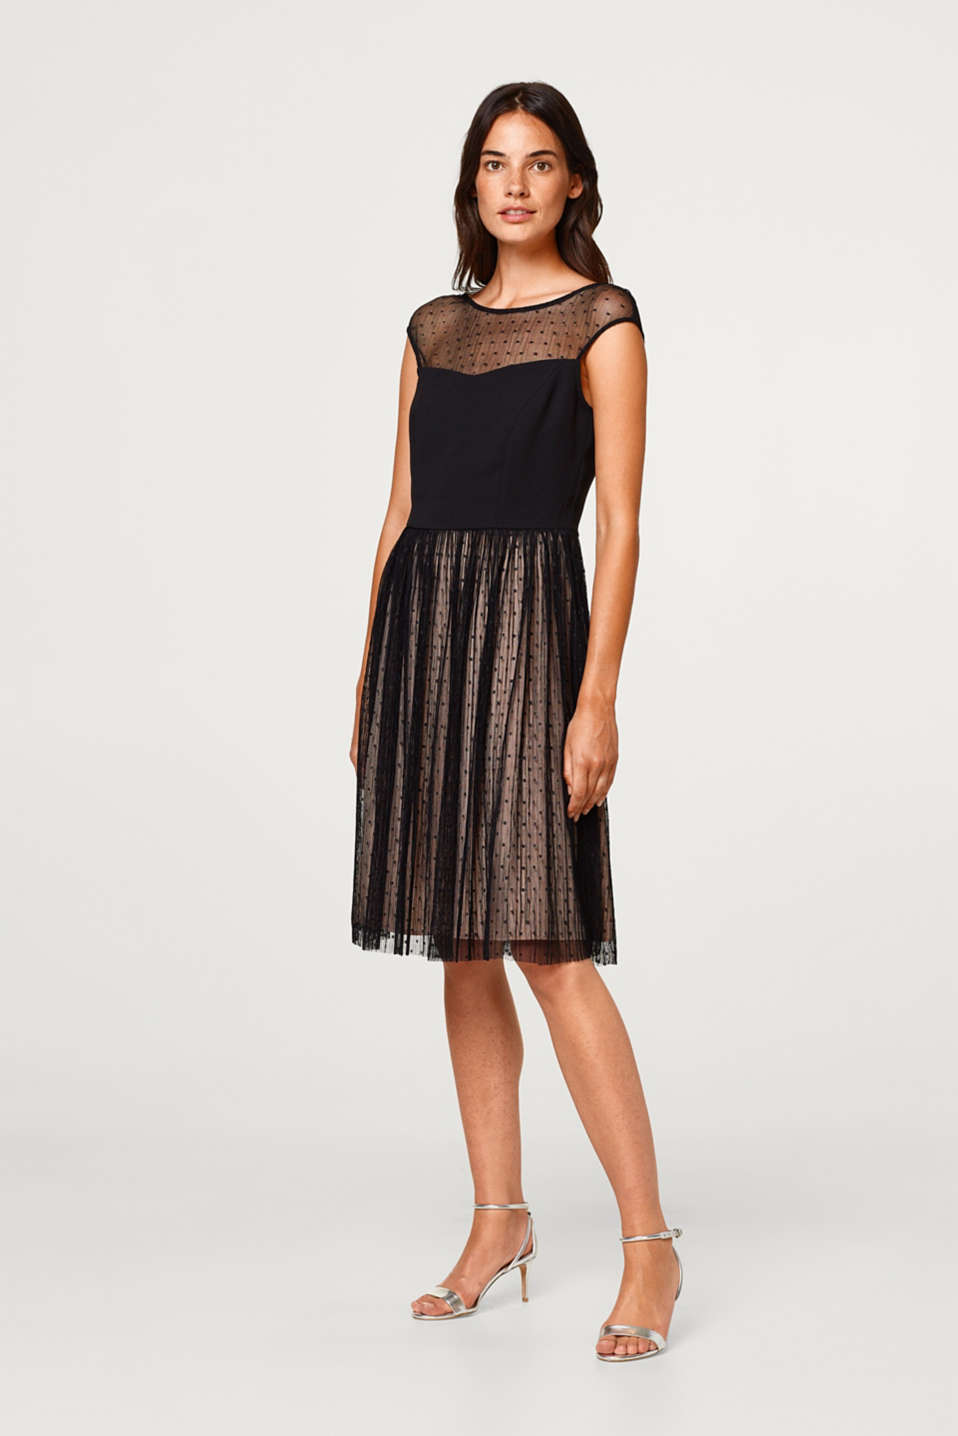 Esprit - Dress in pleated polka dot tulle